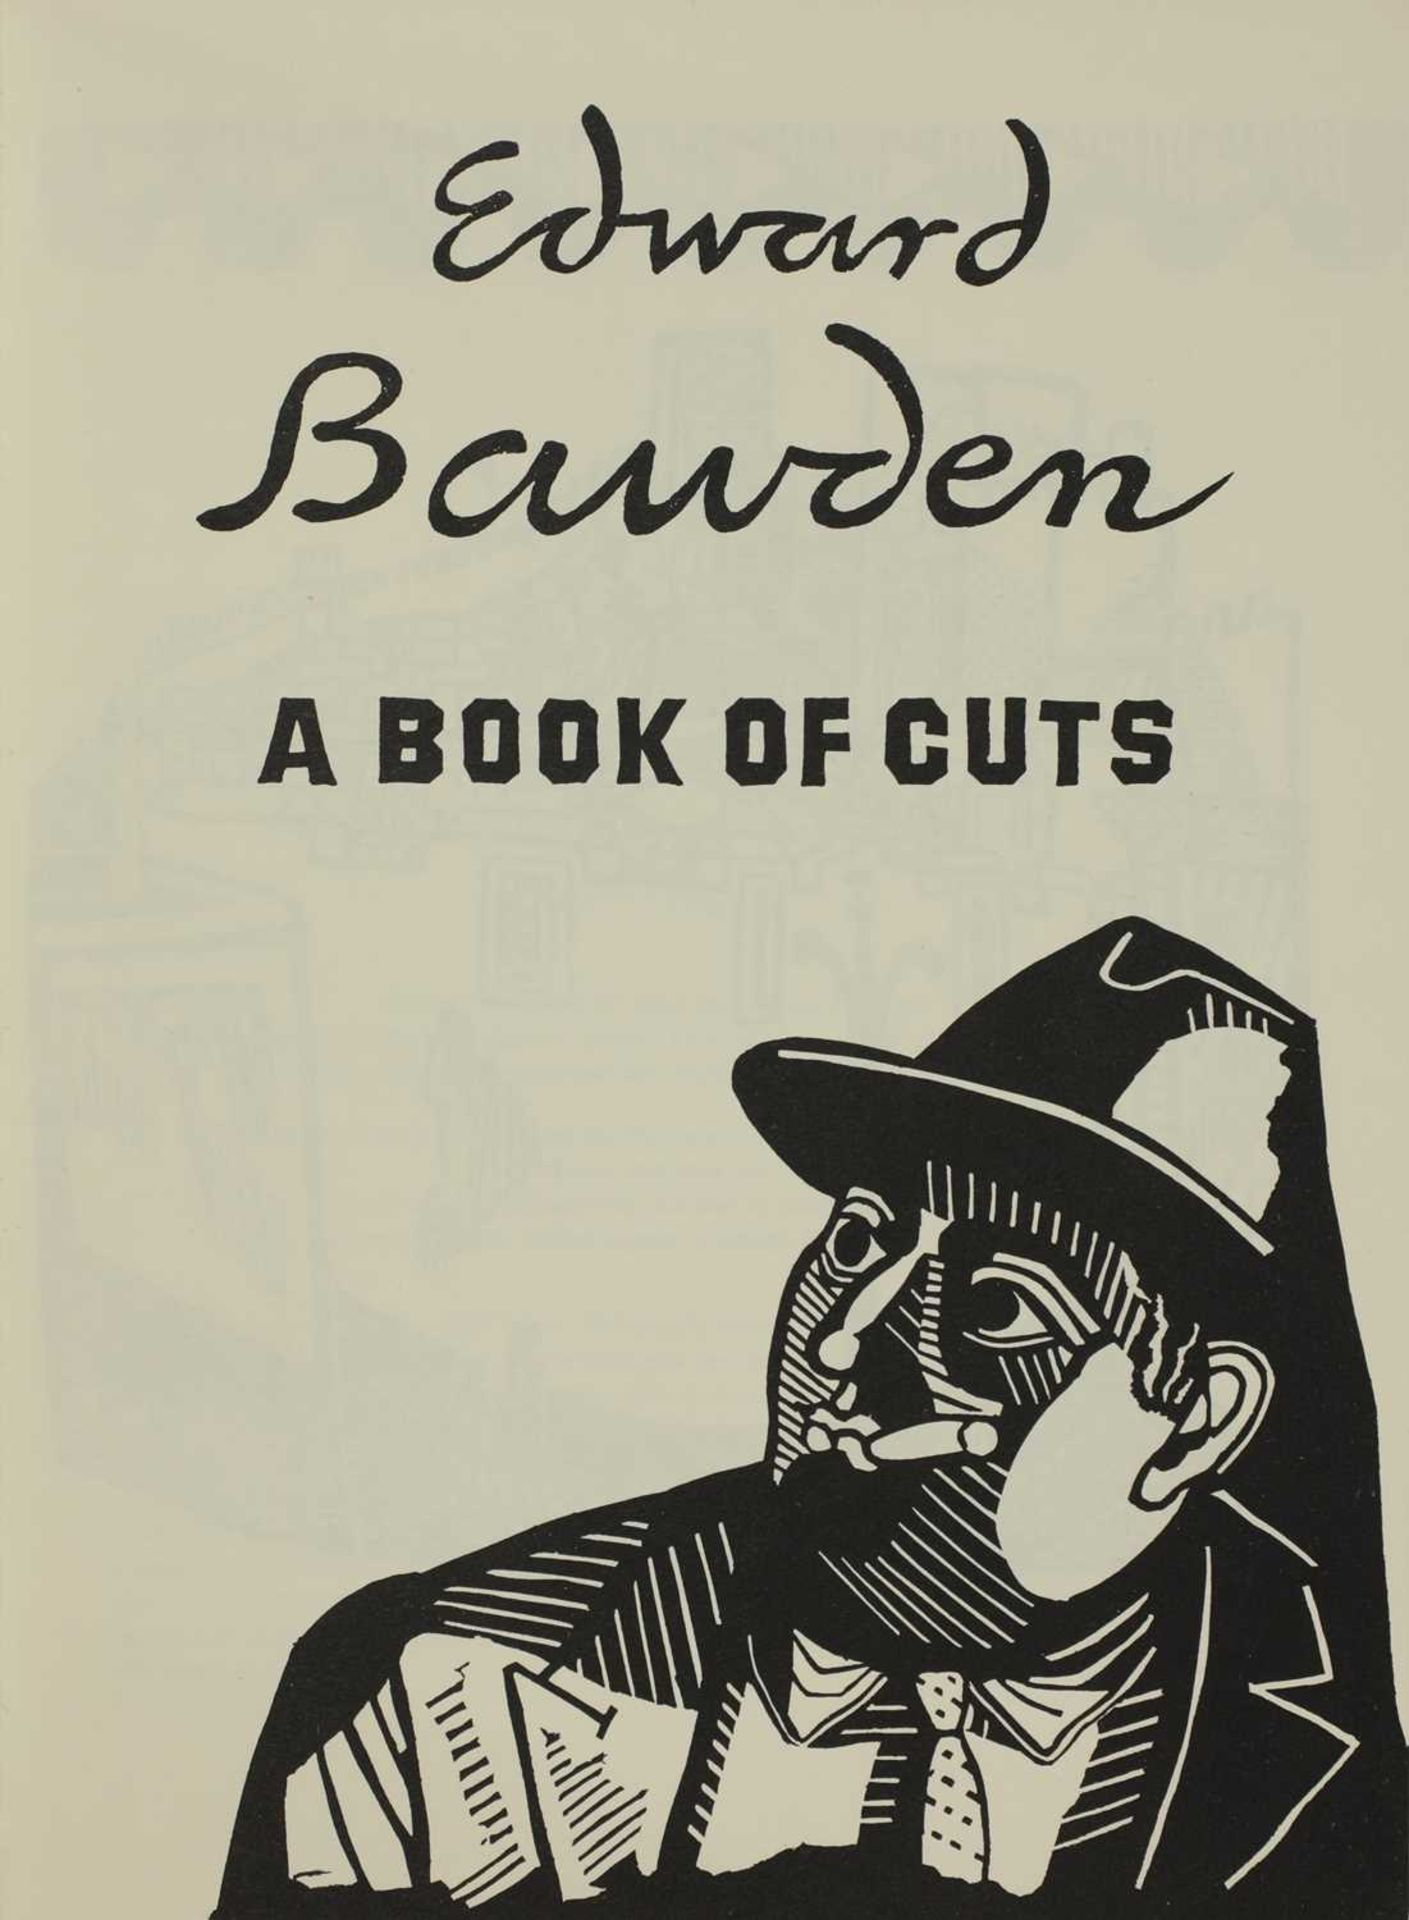 'Edward Bawden' by Douglas Percy Bliss, - Image 2 of 5